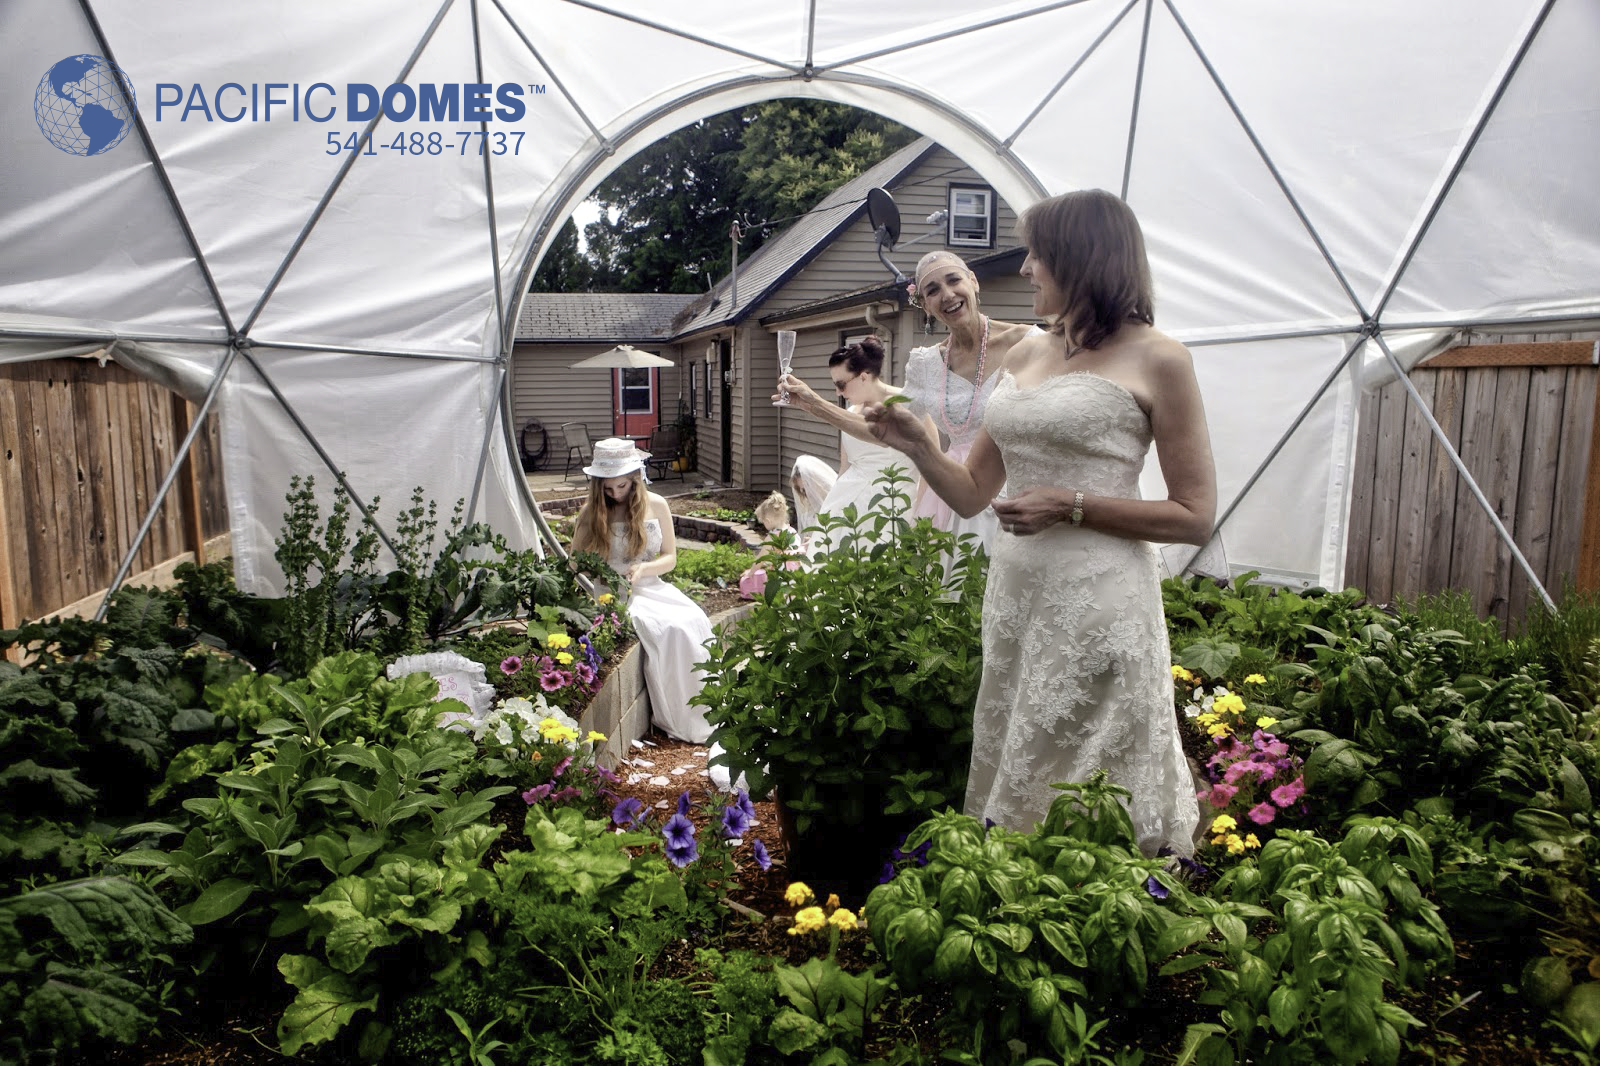 greenhouse kits for outdoor classrooms pacific domes